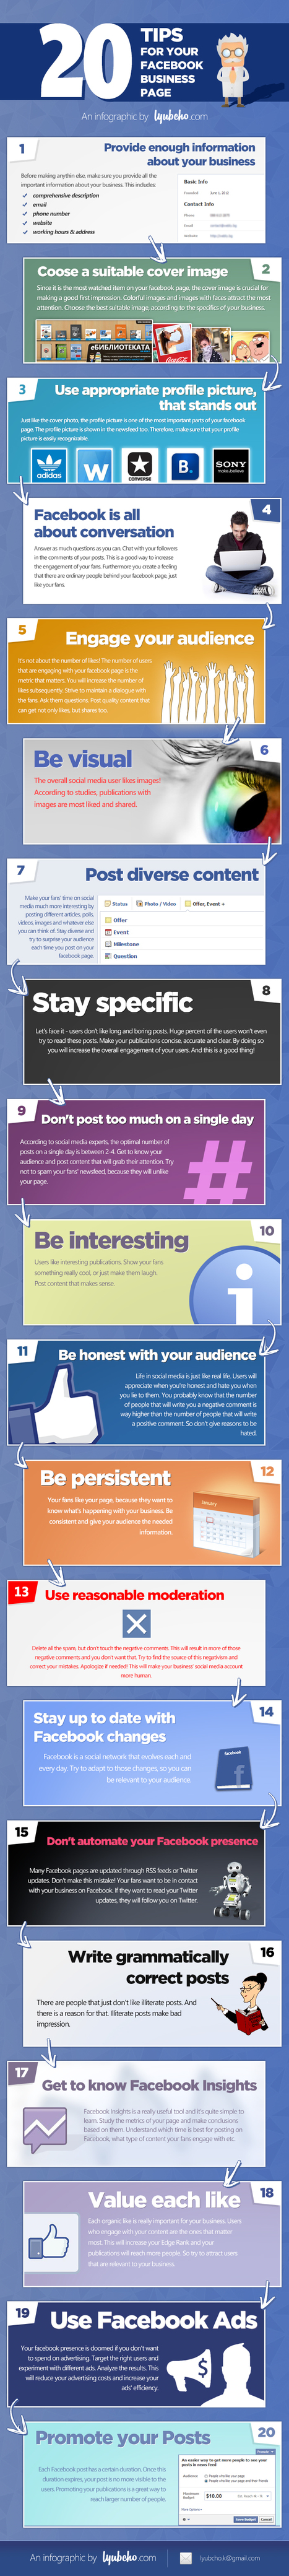 Infographic: 20 Tips for your Facebook Business Page | Spry Designs | Scoop.it